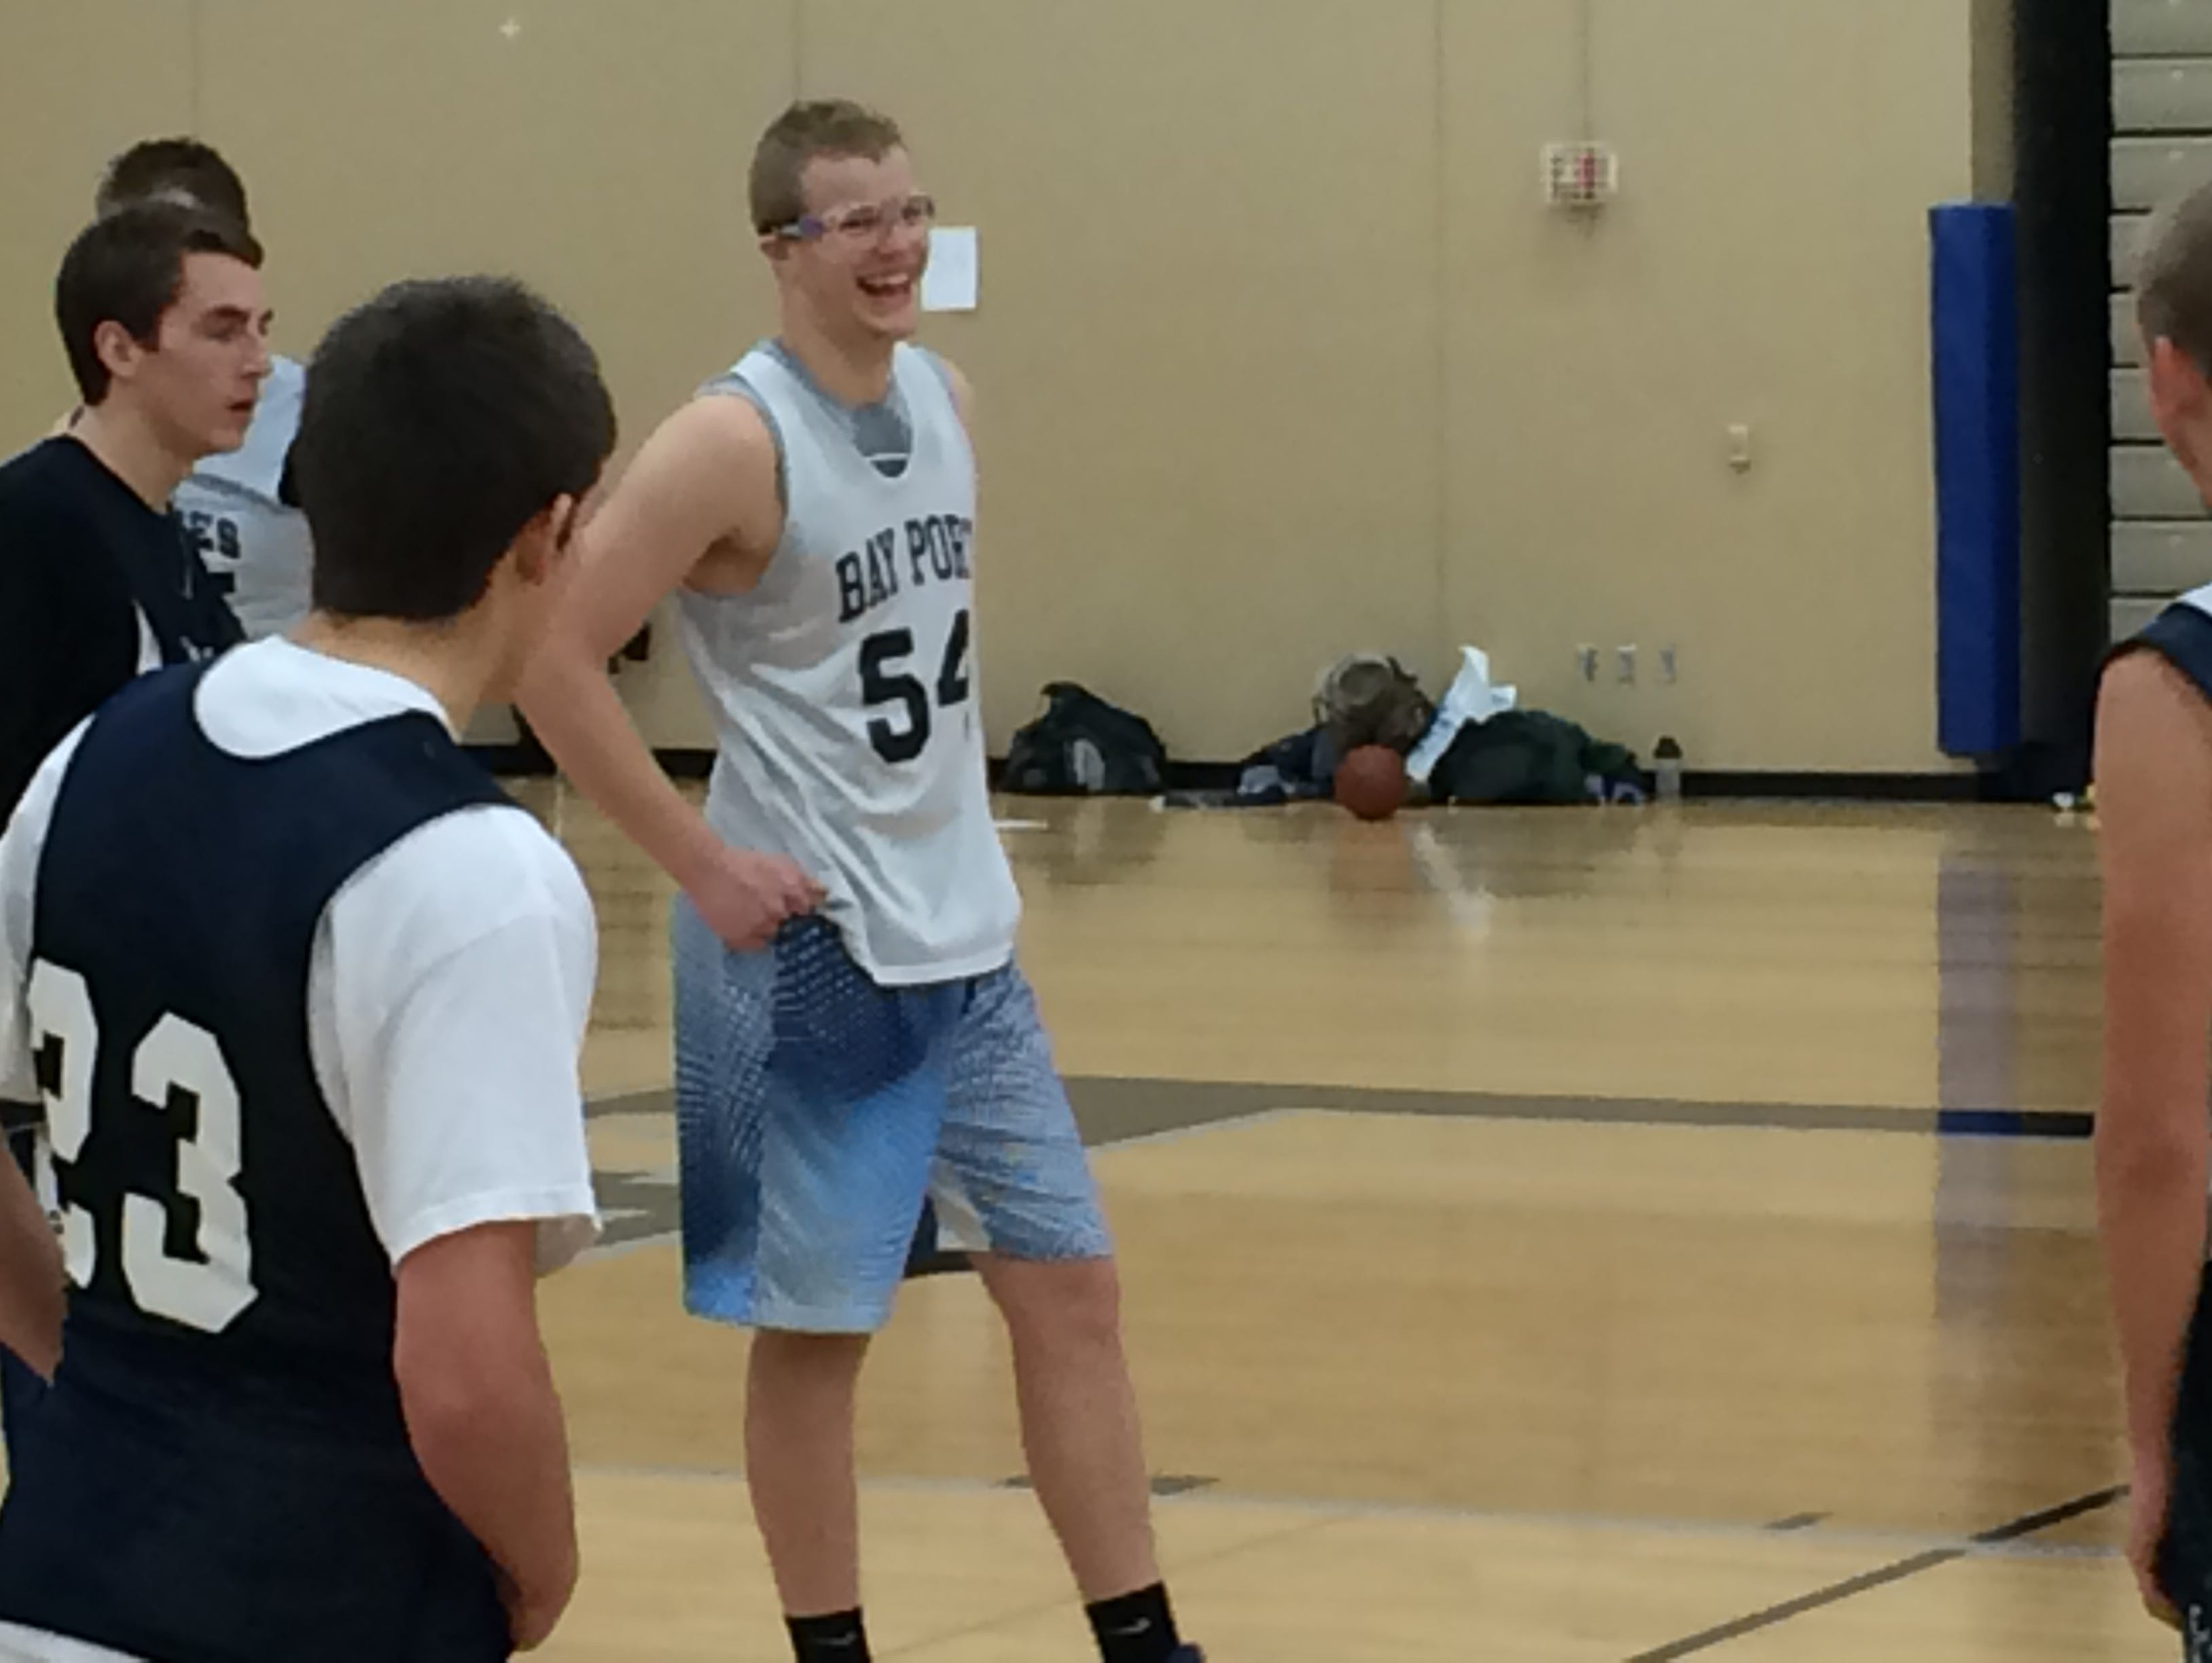 Bay port sophomore Jack Plumb already has received two Division I offers.